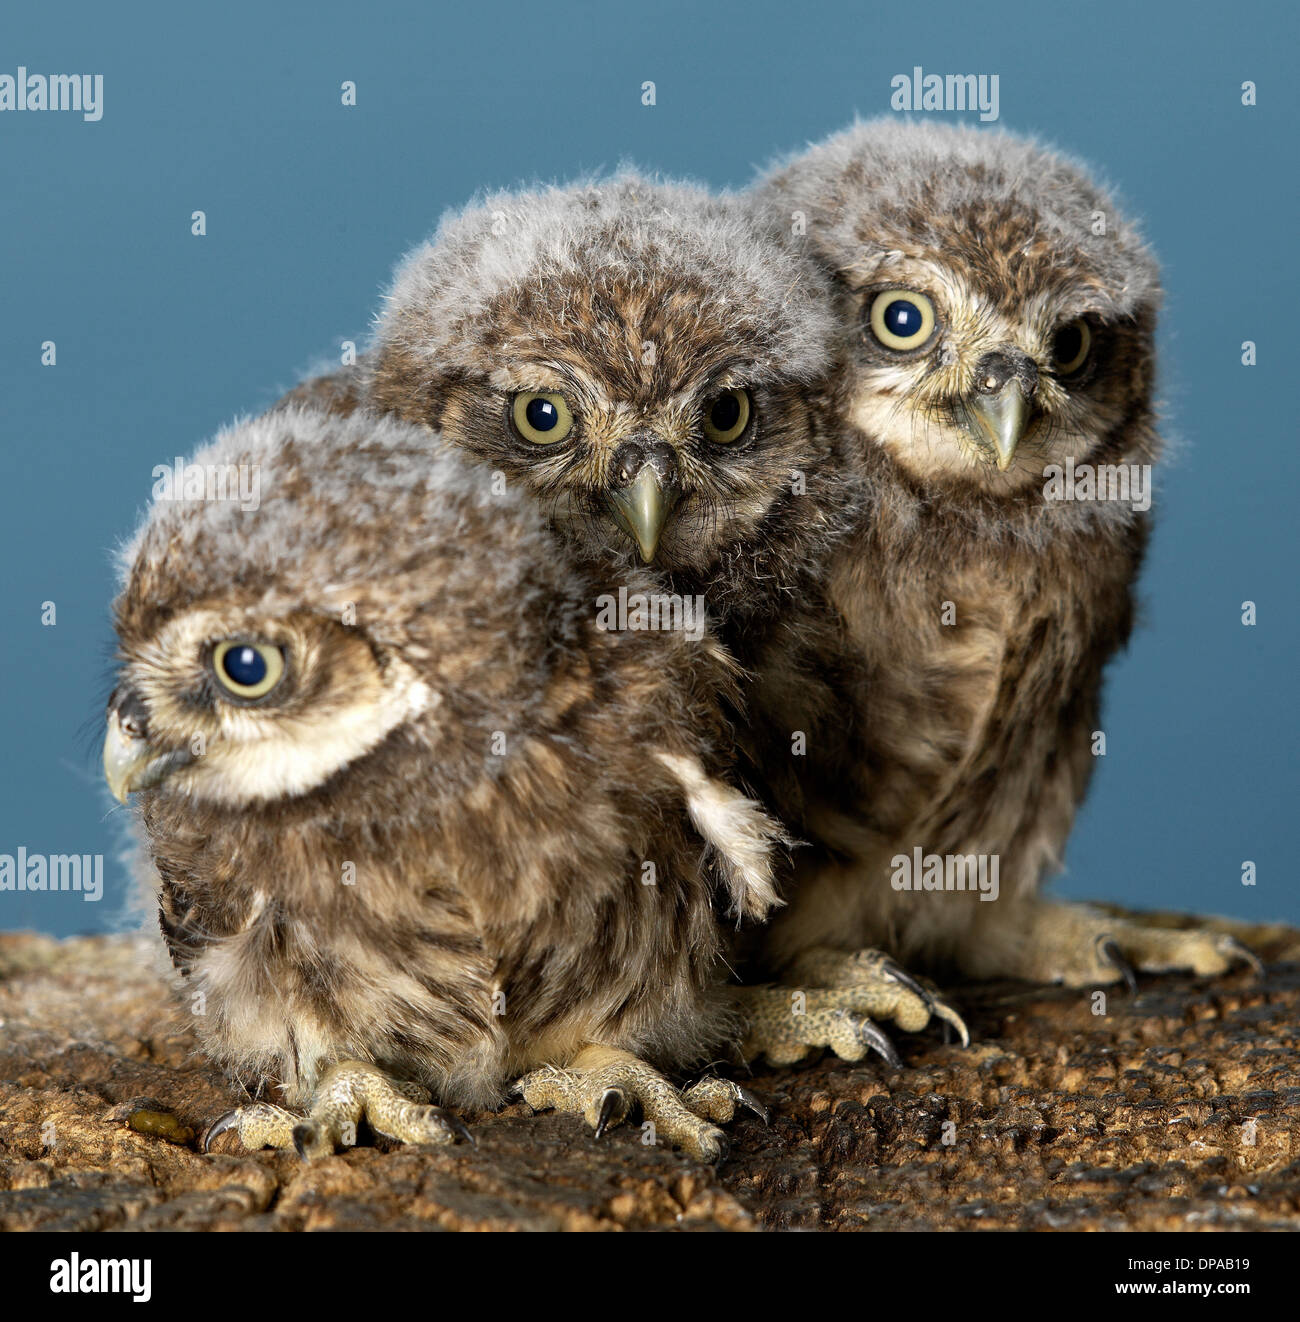 Baby Owls - Stock Image